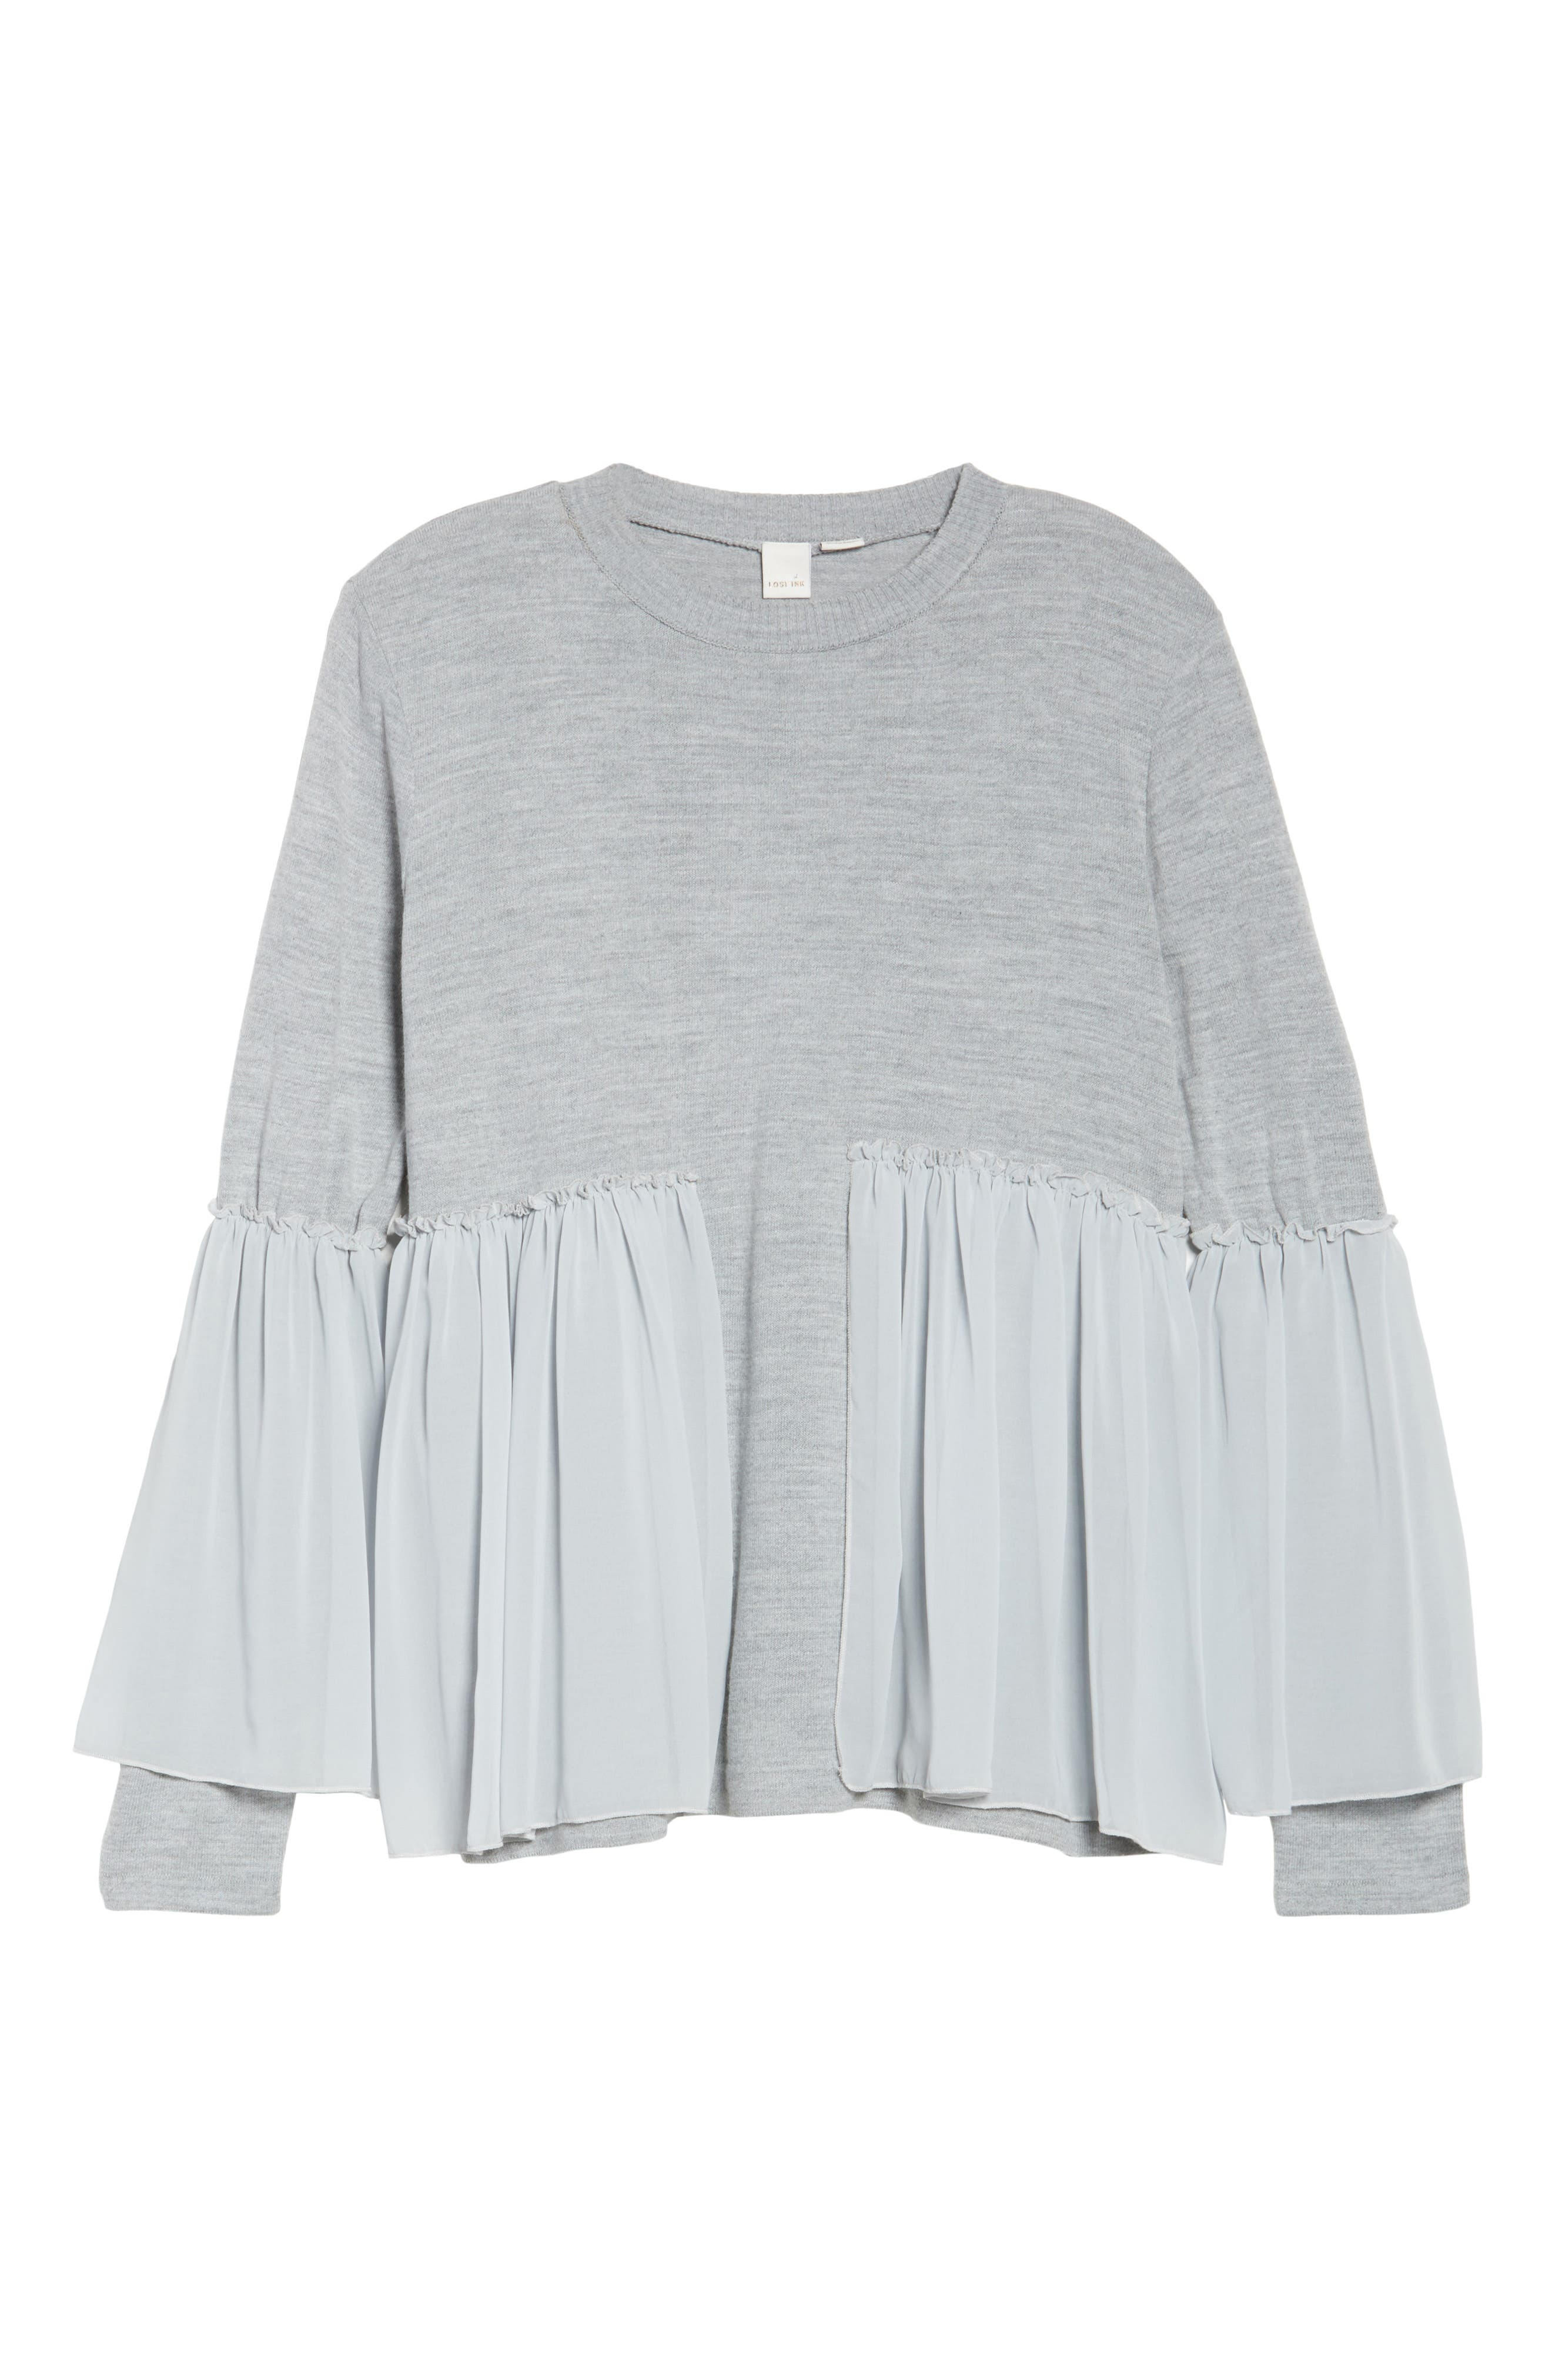 Smocked Chiffon Contrast Sweater,                             Alternate thumbnail 6, color,                             020